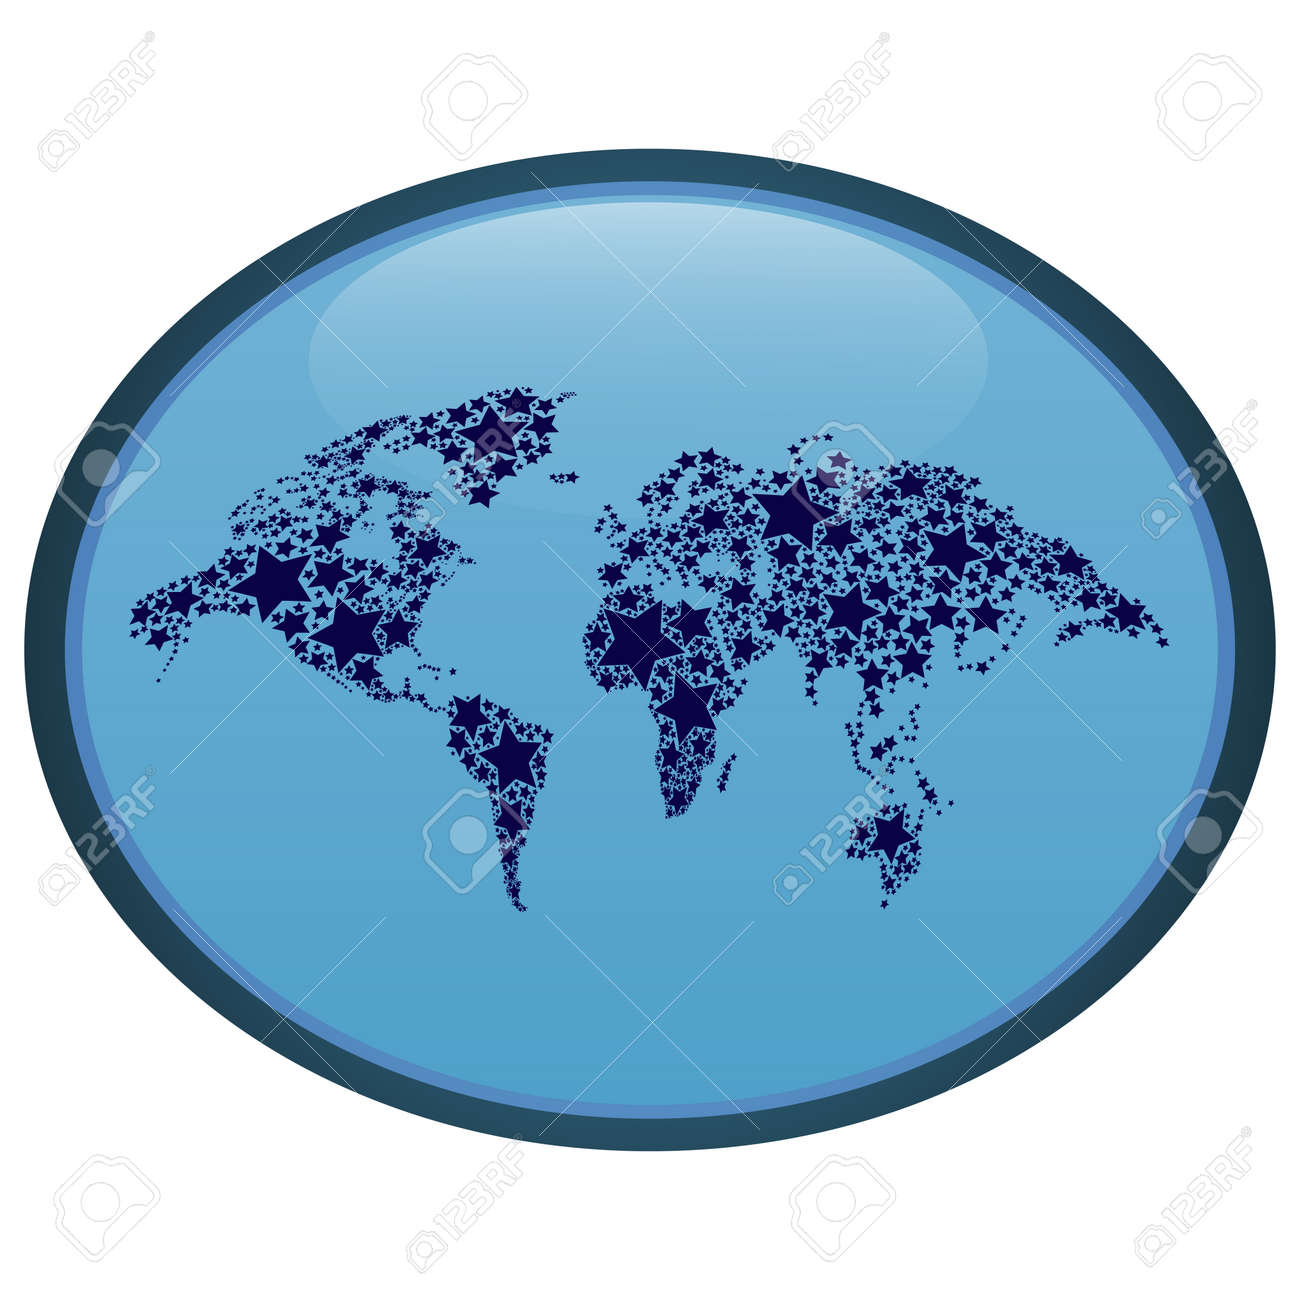 Abstract oval world map icon royalty free cliparts vectors and abstract oval world map icon stock vector 63282226 gumiabroncs Image collections